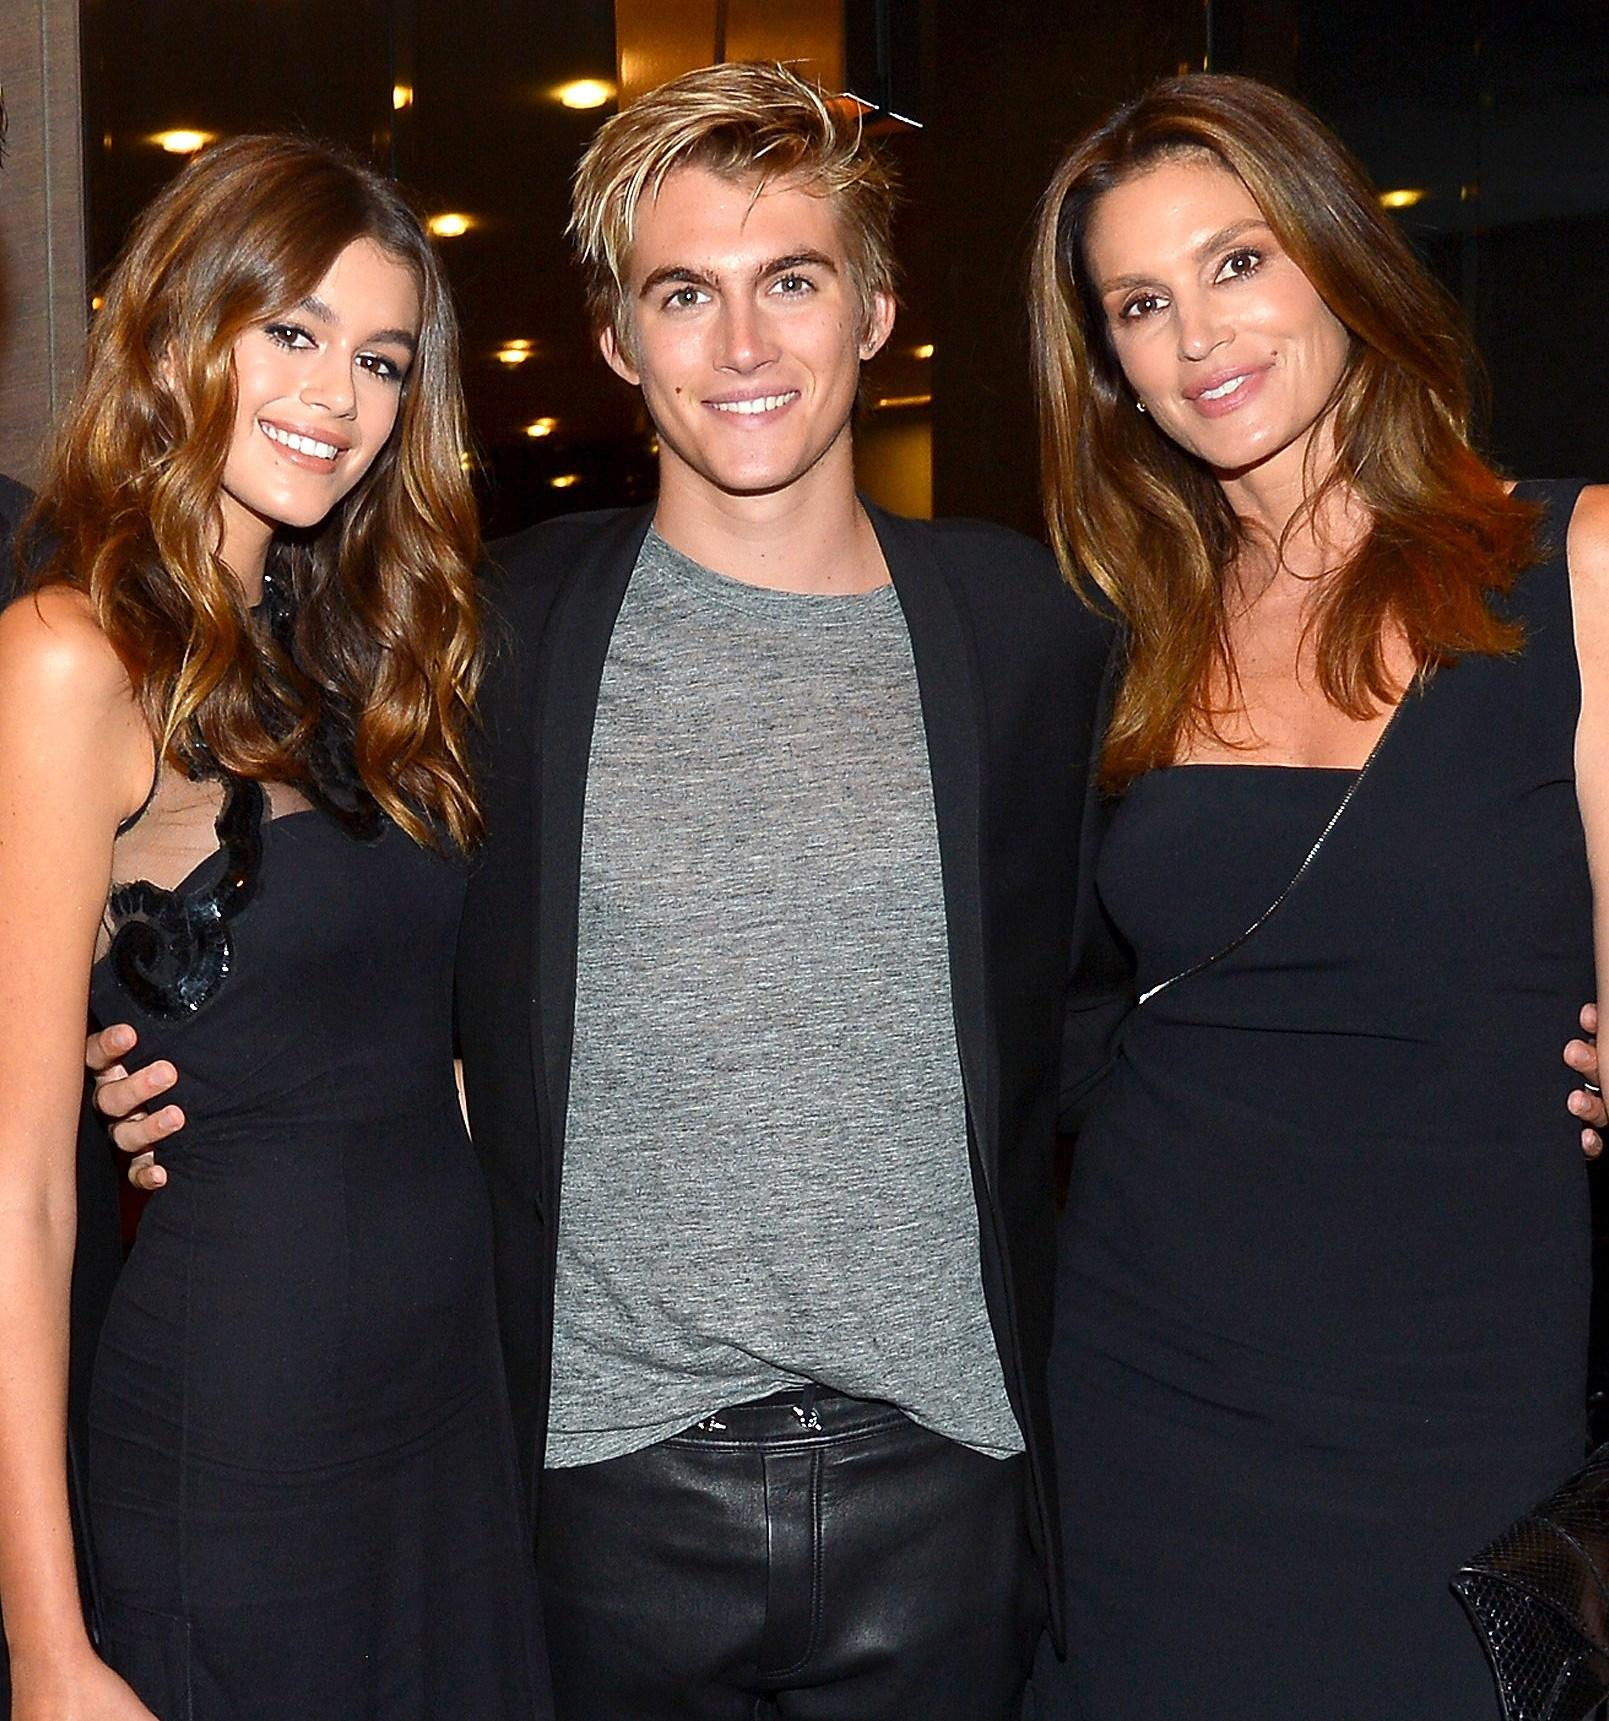 25 Pics To Show Why Kaia Gerber (Cindy Crawford's Daughter) Will ...